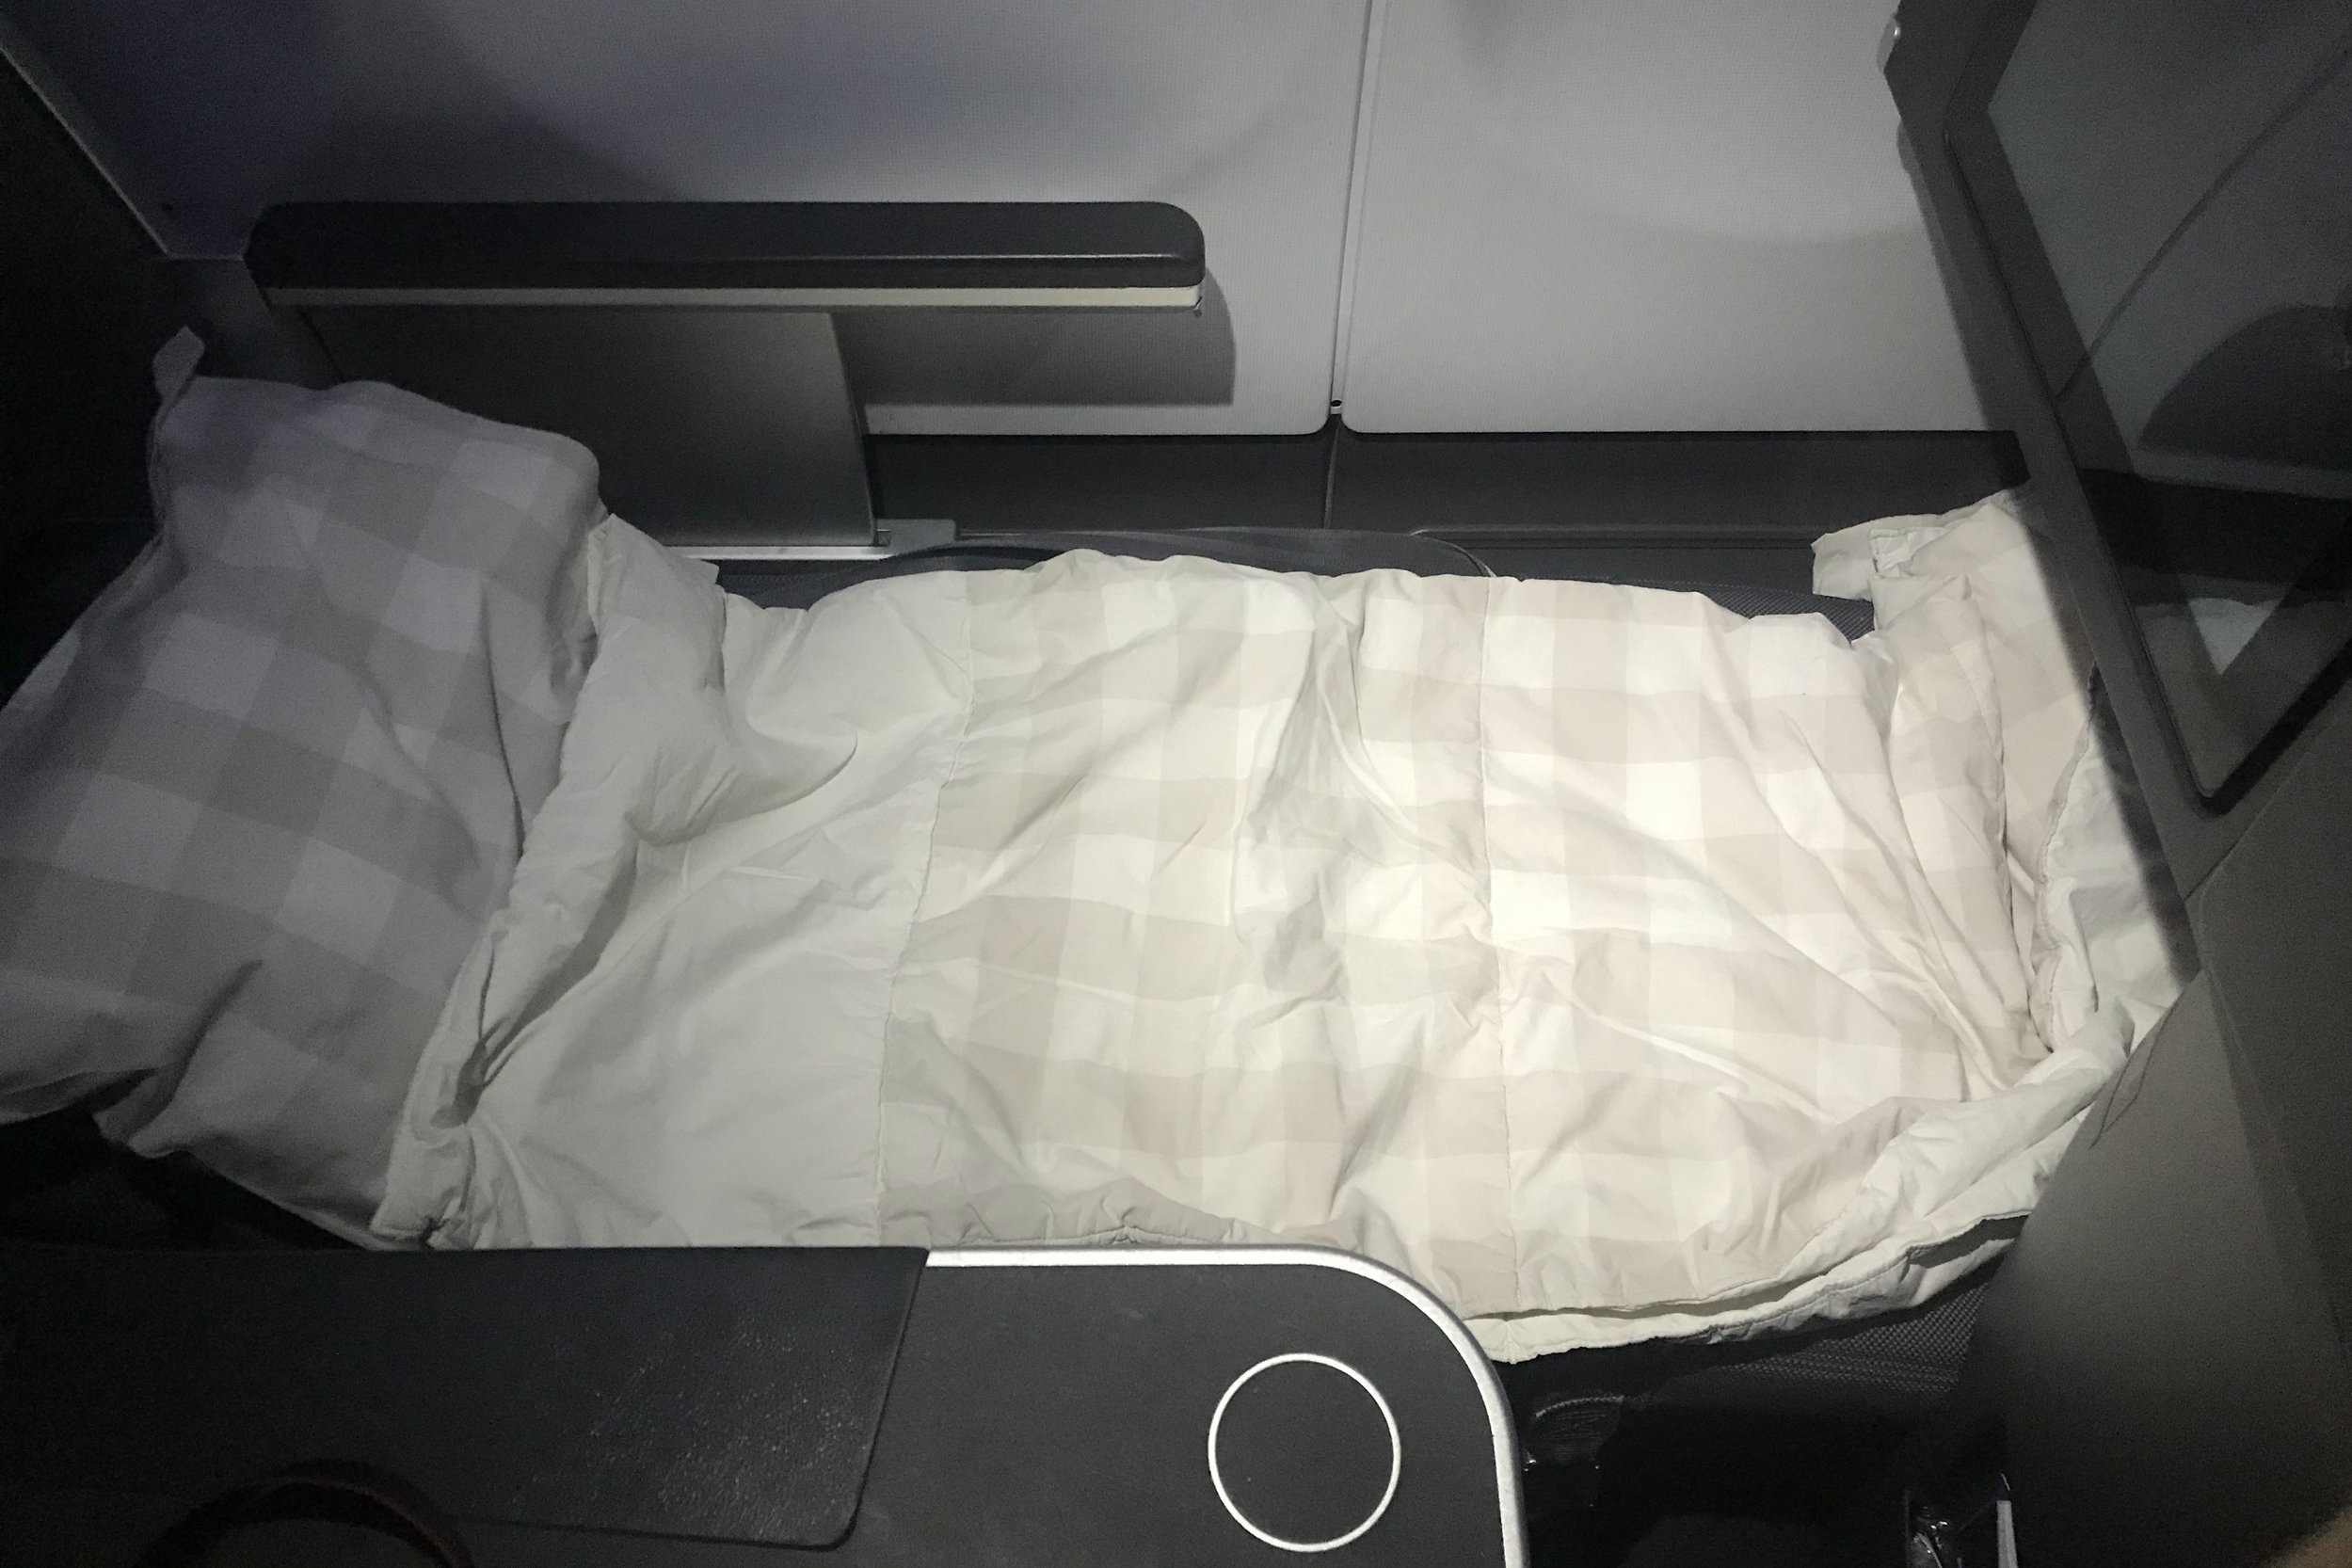 SAS business class – Bed